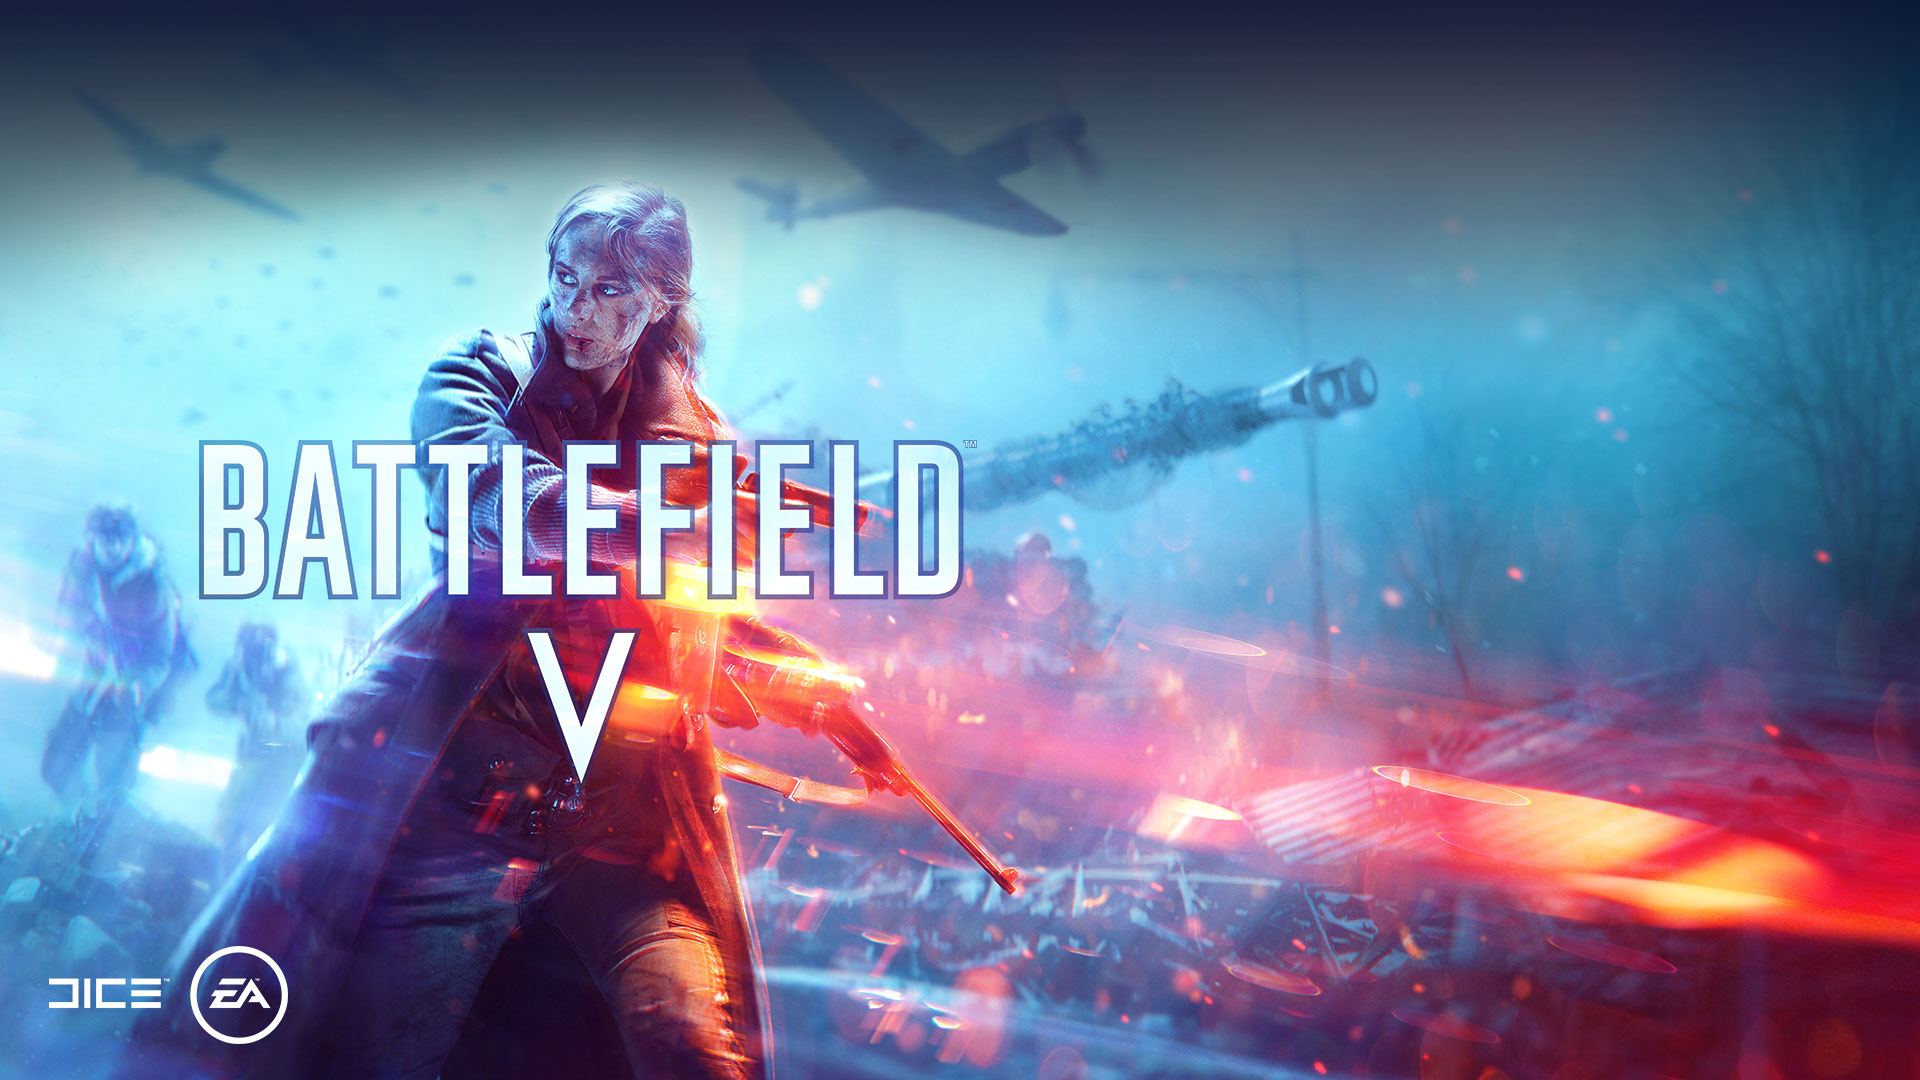 Battlefield V, Dice EA, Front view of French soldier.